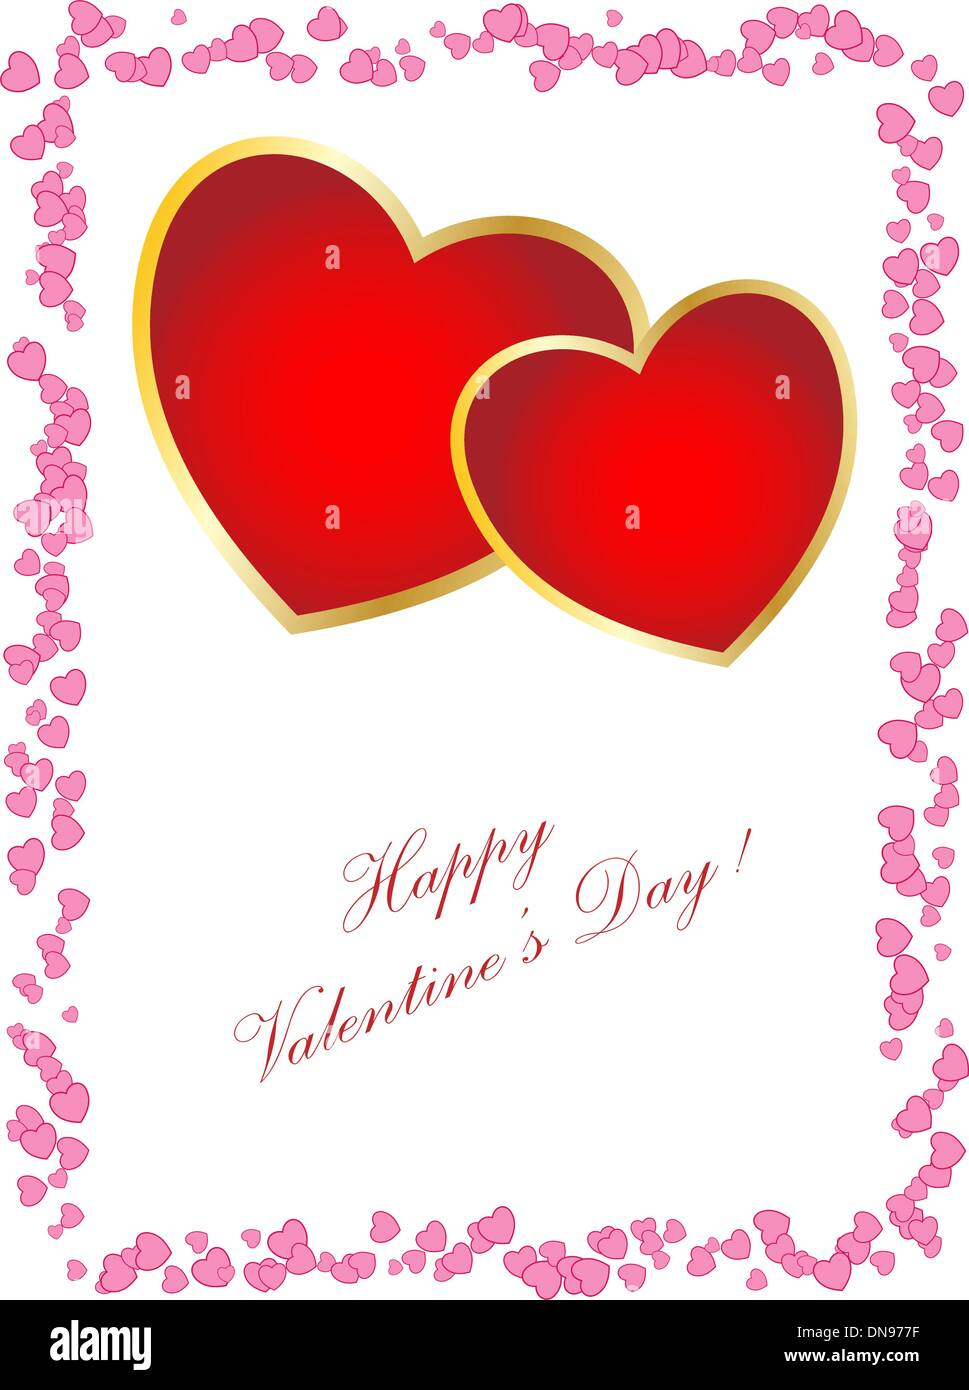 Simple Valentine S Day Card You Can Change Text For Your Design